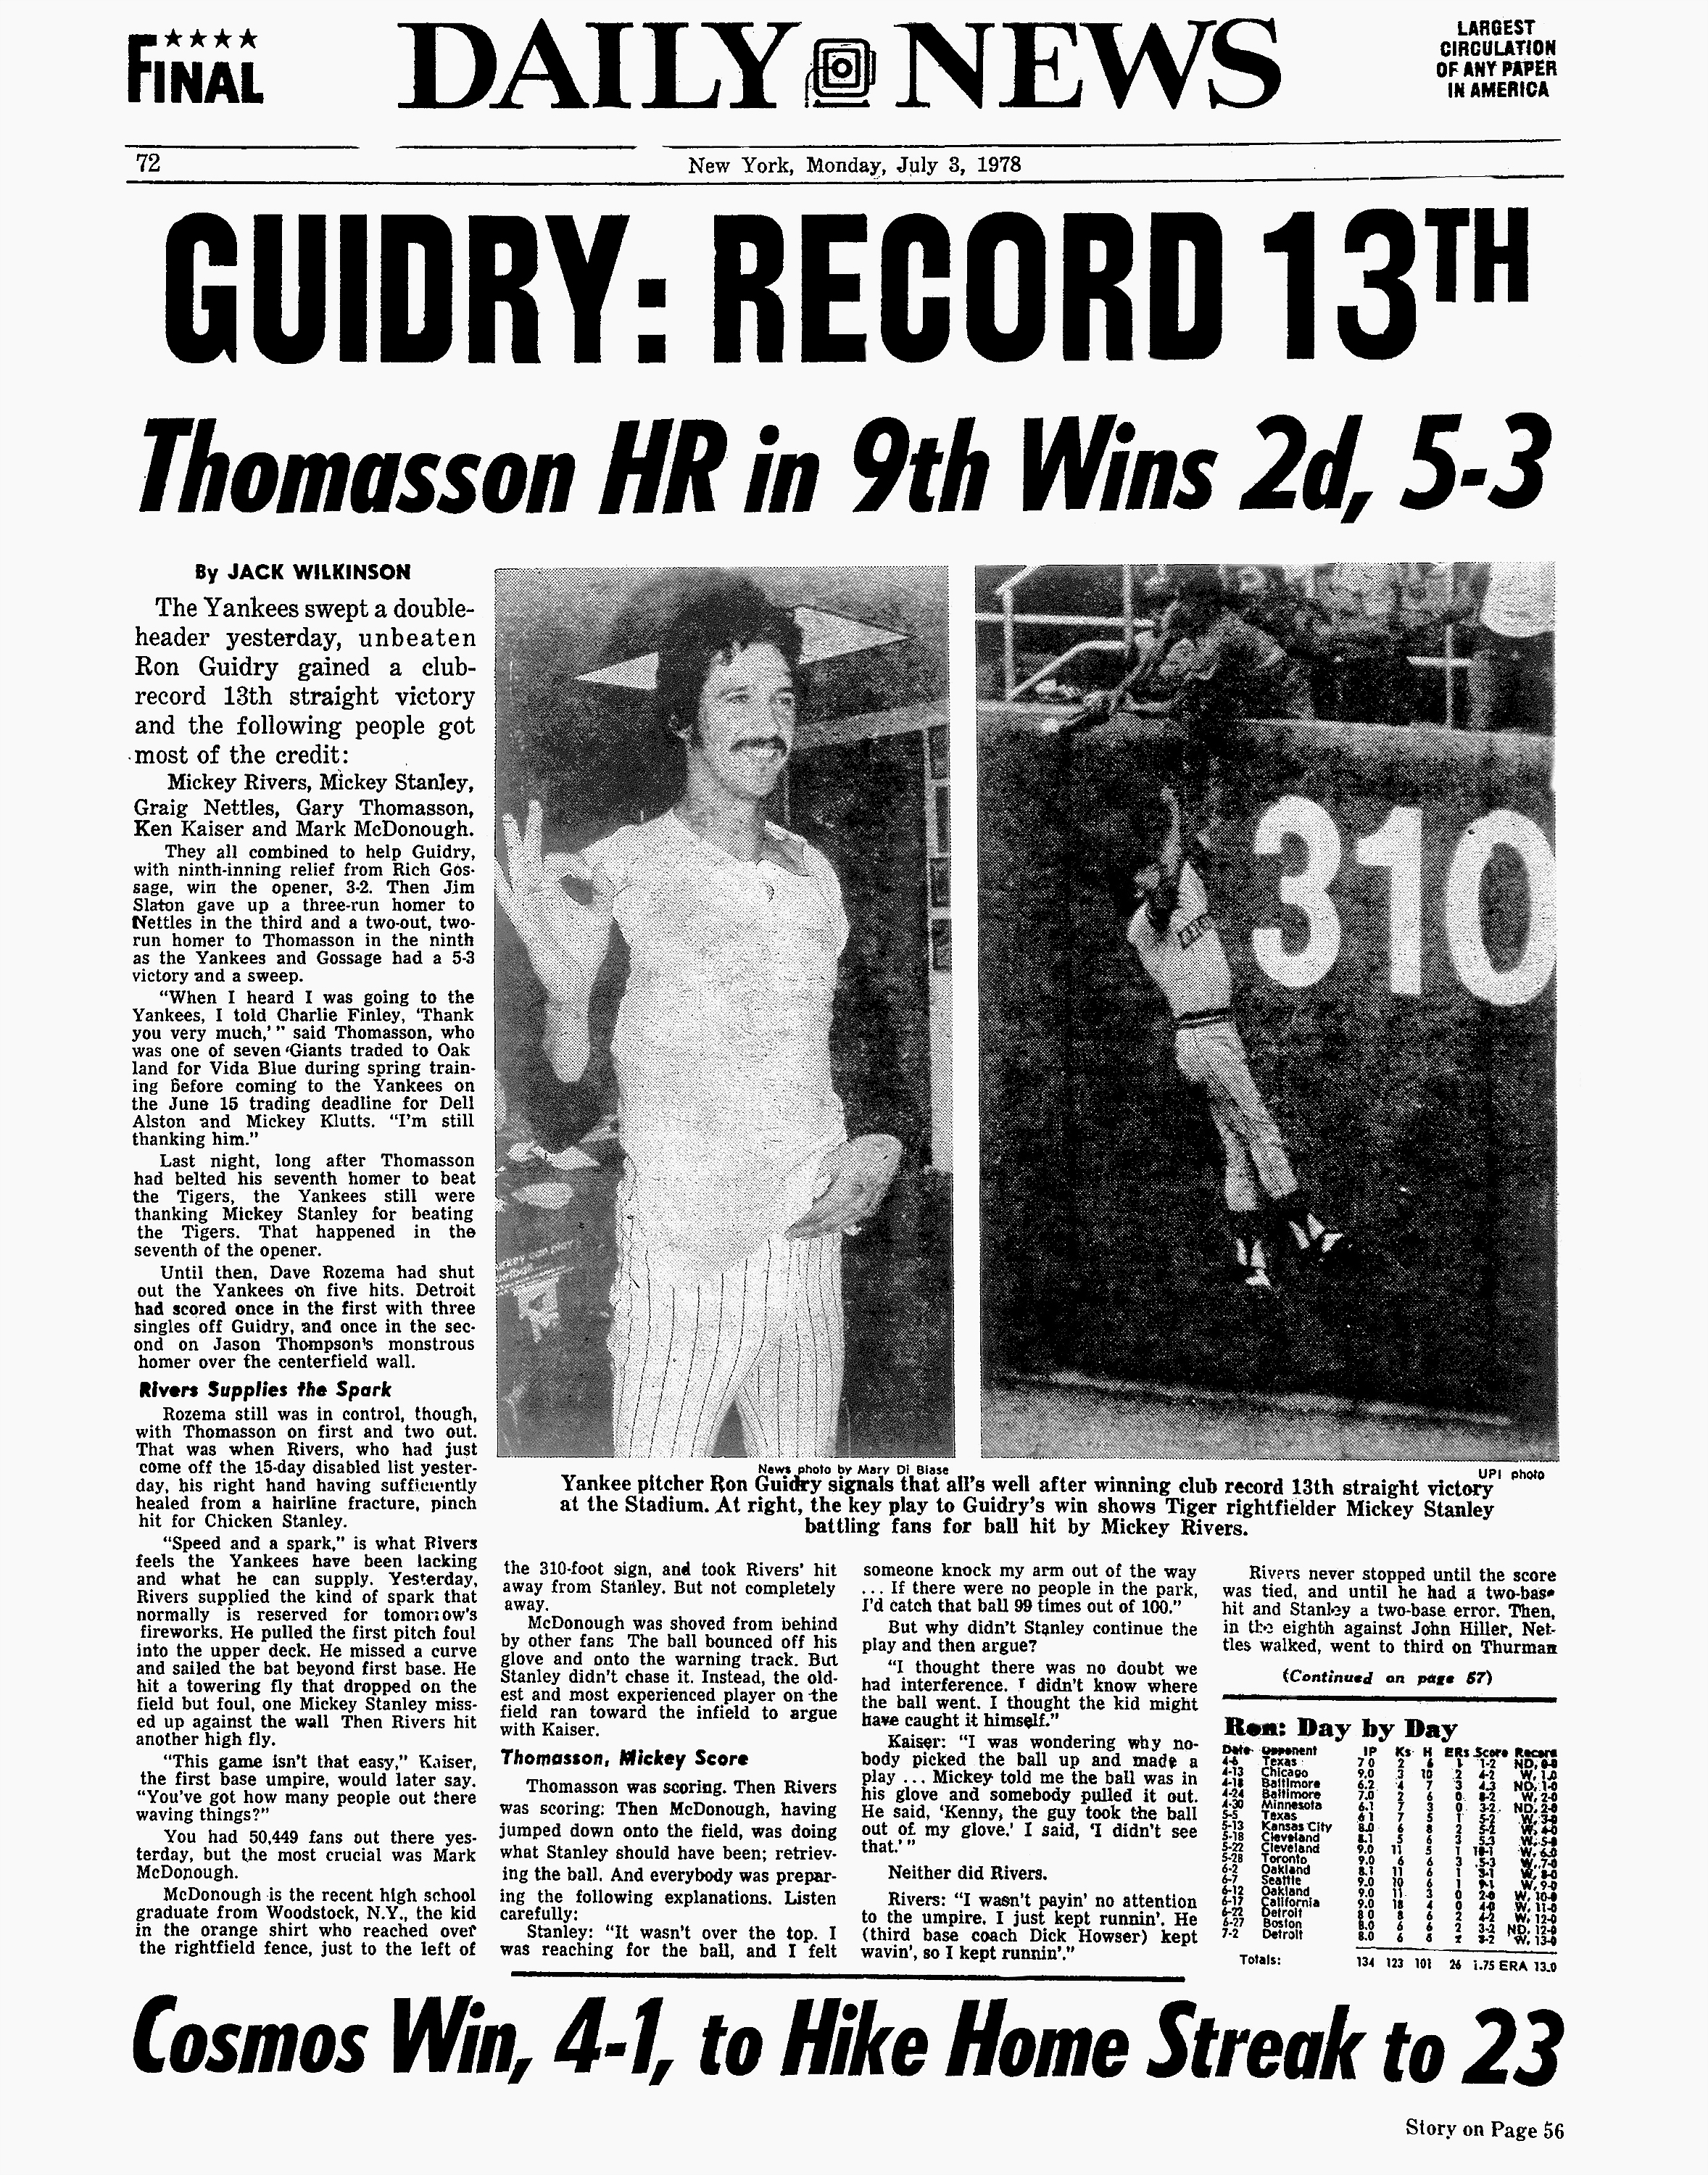 Daily News back page dated July 3, 1978, Headlines: GUIDRY: